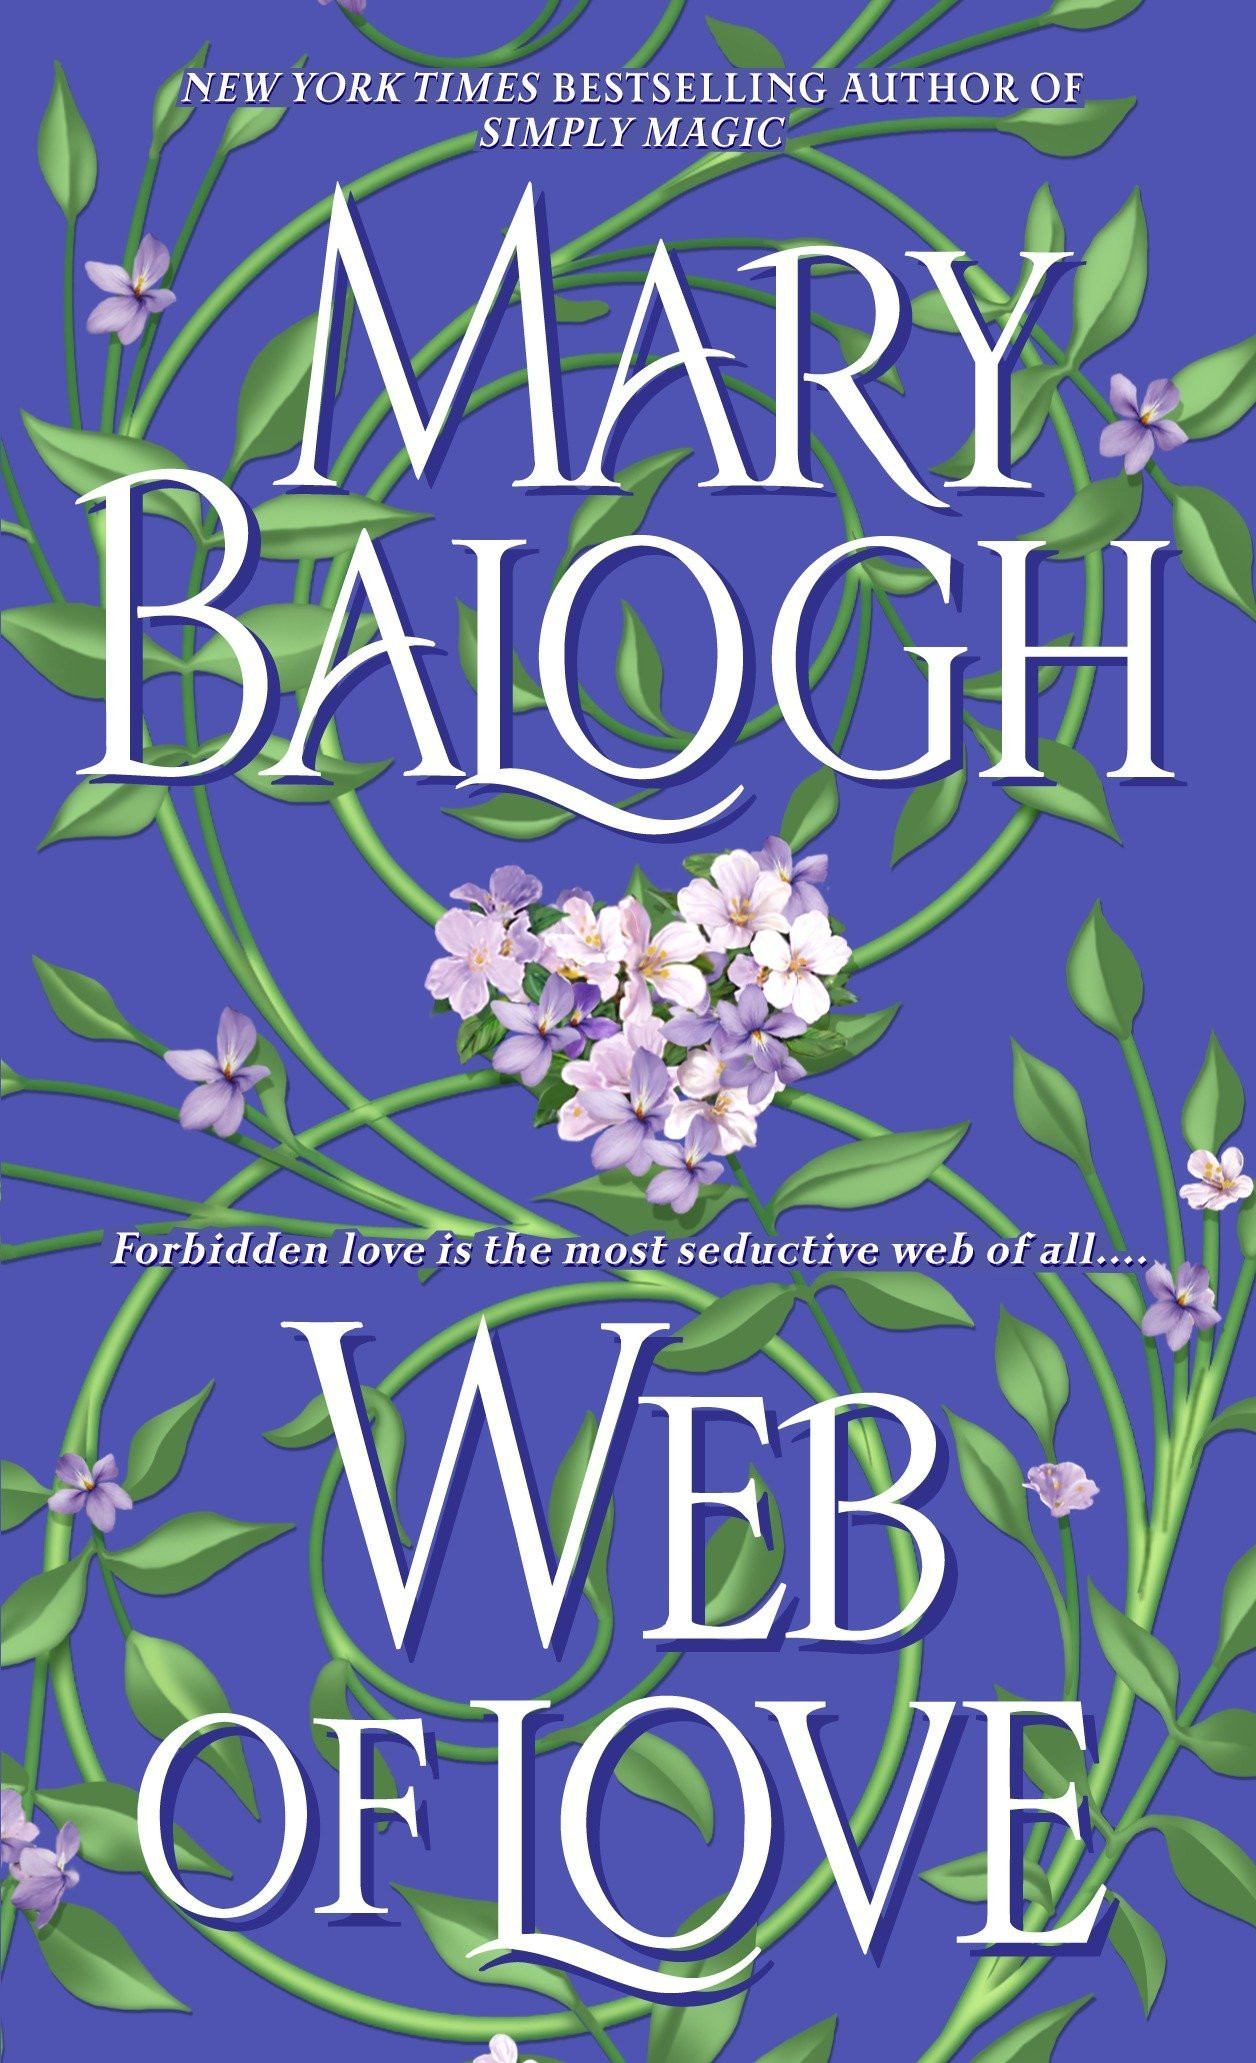 Web of Love The Web Trilogy Mary Balogh Amazon Books